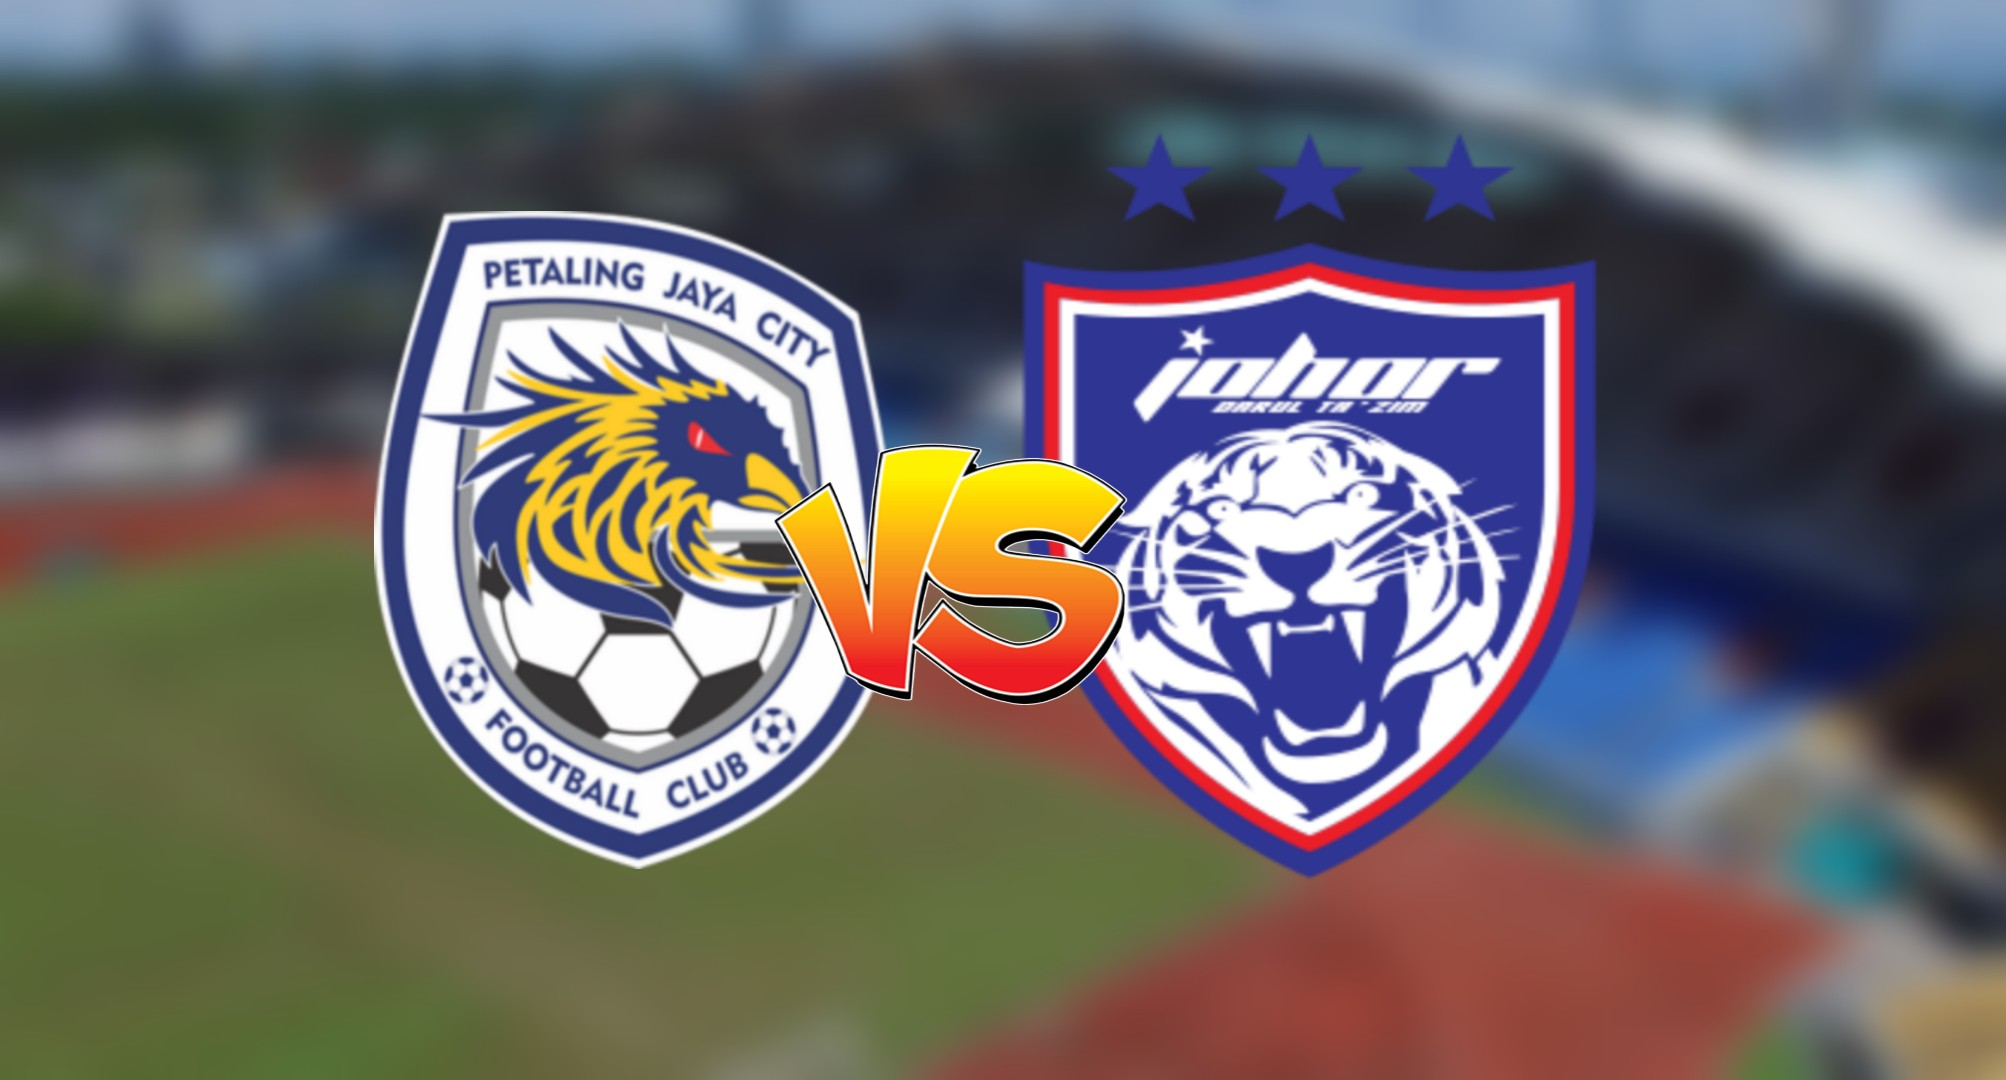 Live Streaming PJ City vs JDT Liga Super 25.9.2020